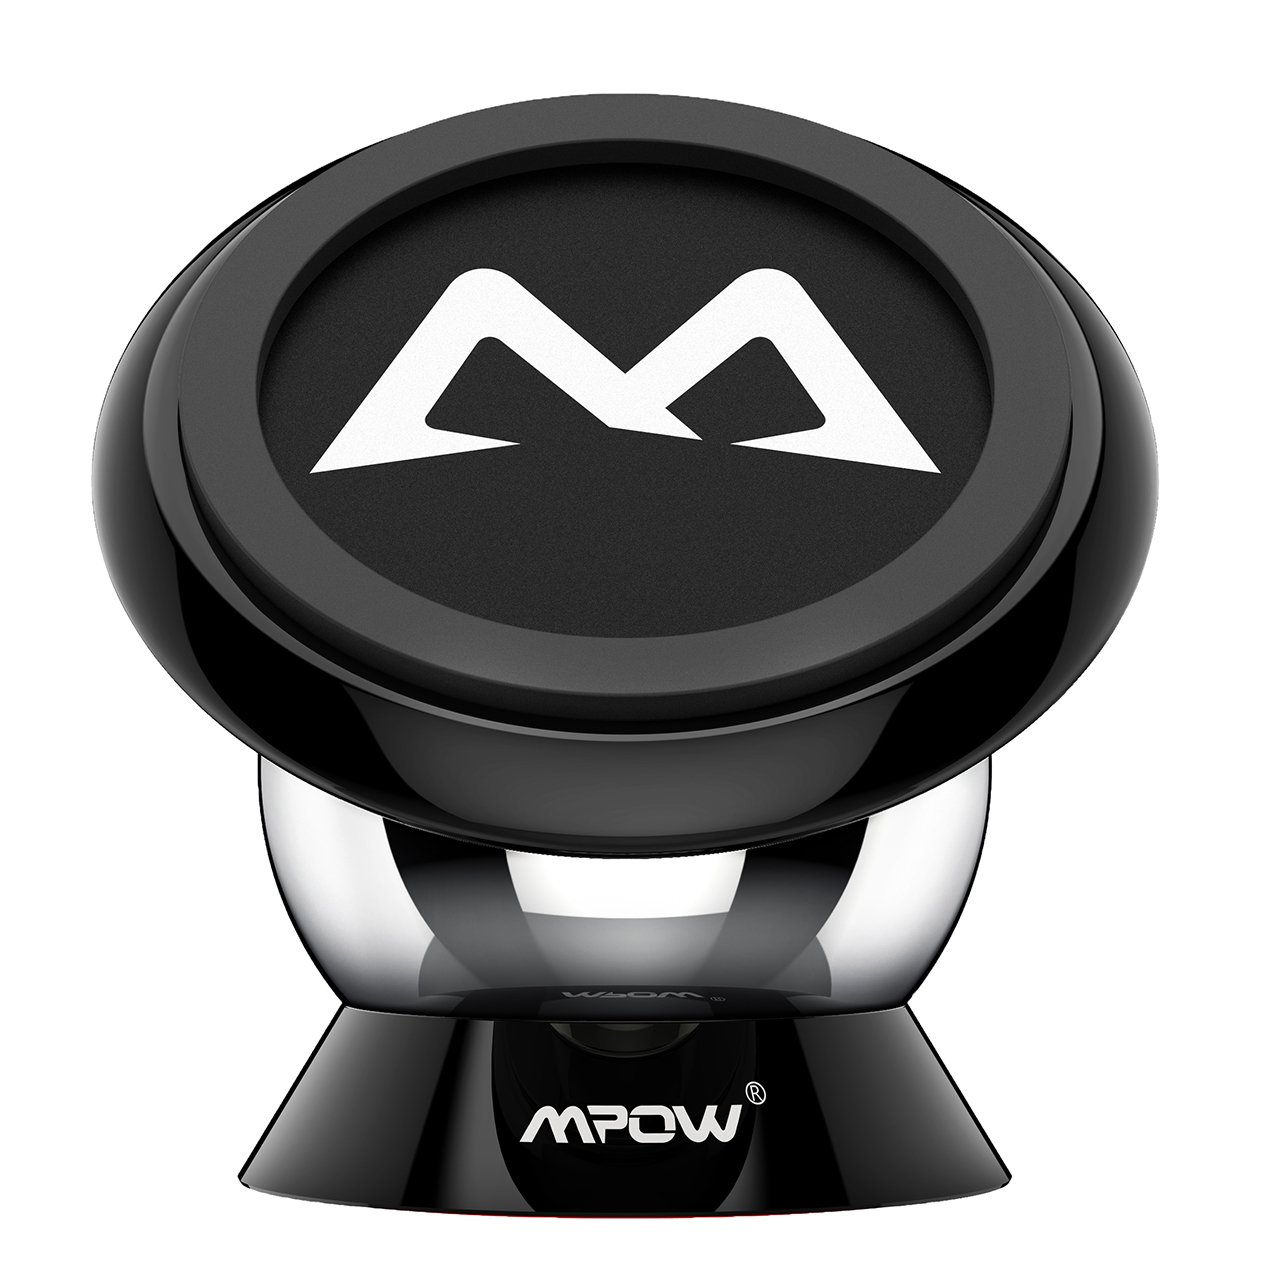 Car Mount Holder, Mpow Magnetic Cell Phone Holder 360° Rotatable Universal Sticky Mini Dashboard GPS Car Mount Phone Cradle for iPhone 7 7 Plus 6S/6 Plus, Galaxy S7/ S6/ S6 Edge/S5, Black PAMCM18-V